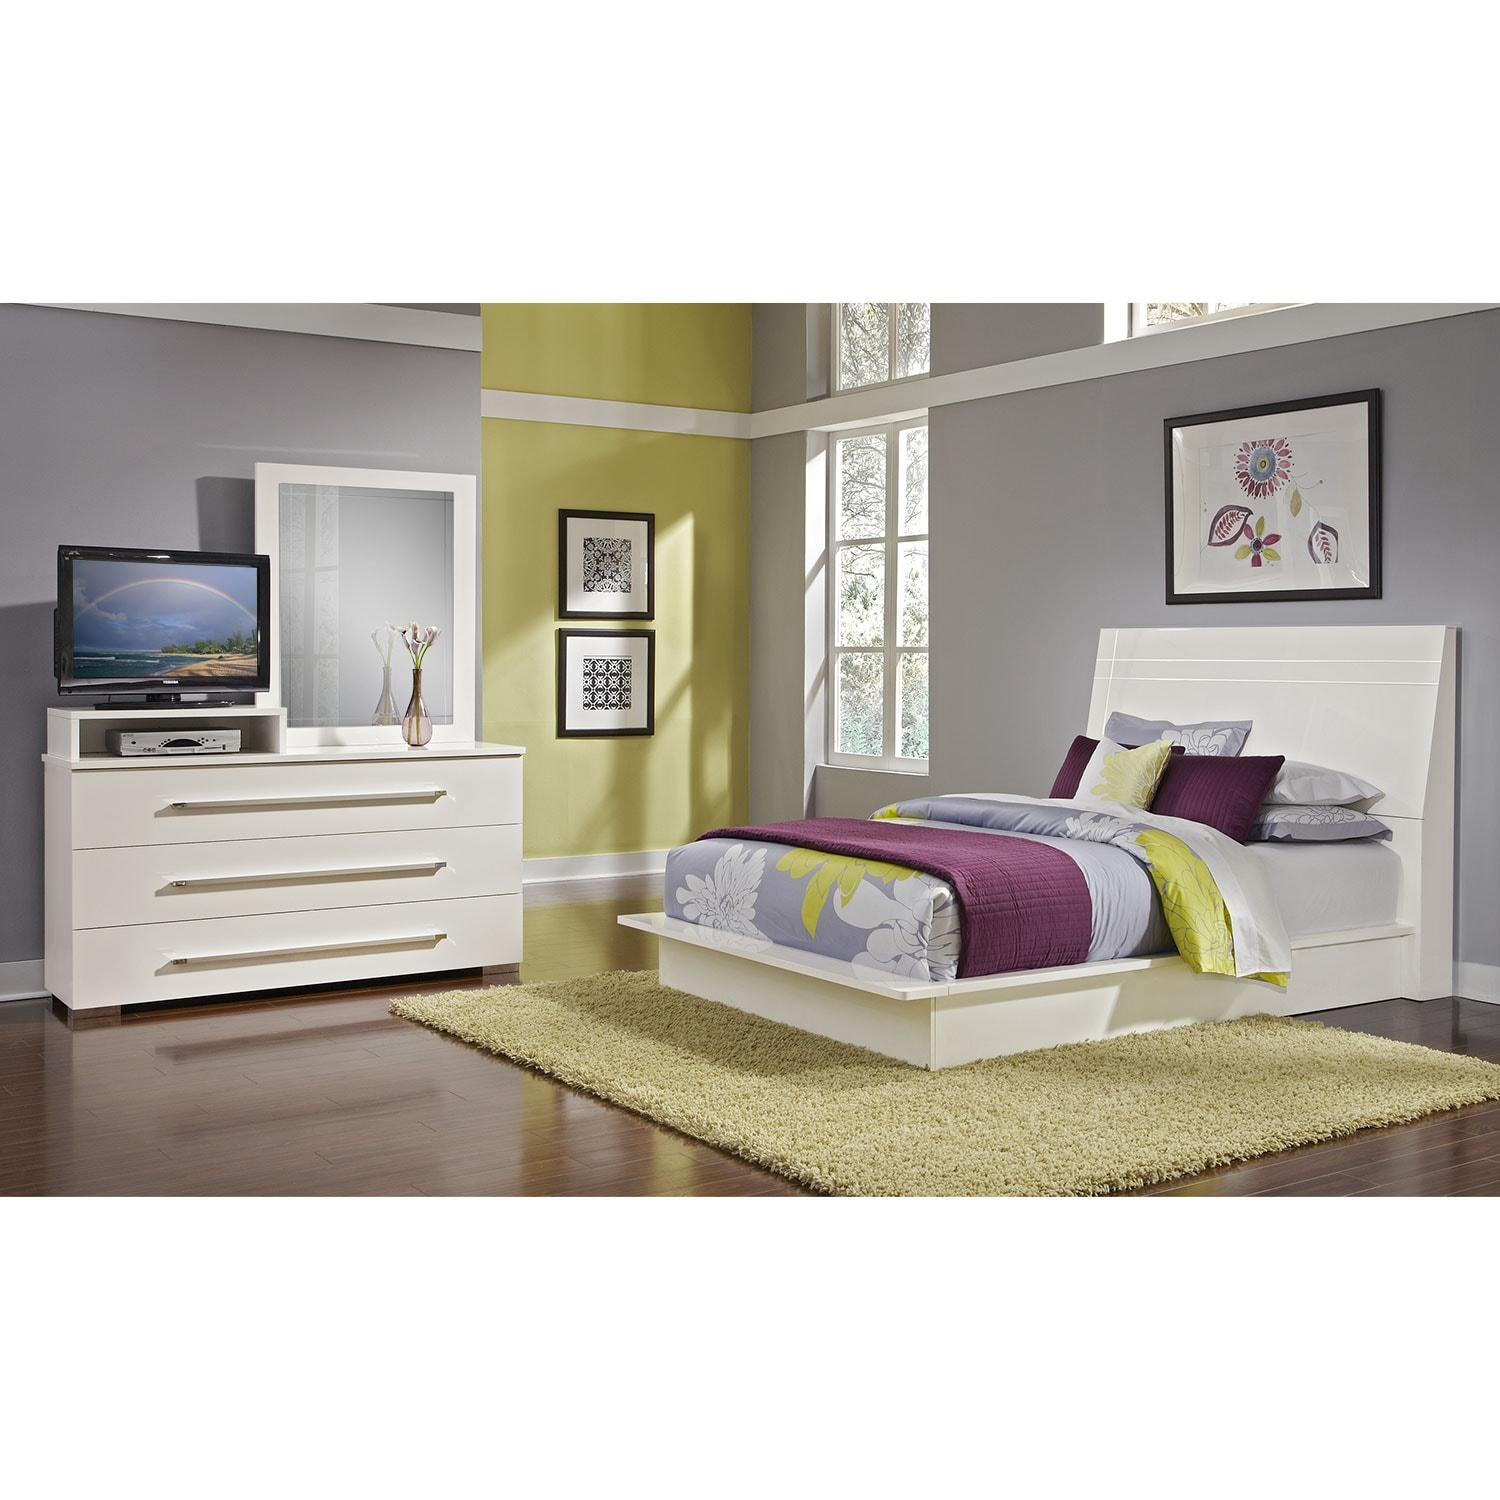 Bedroom Furniture - Dimora 5-Piece Queen Panel Bedroom Set with Media Dresser - White